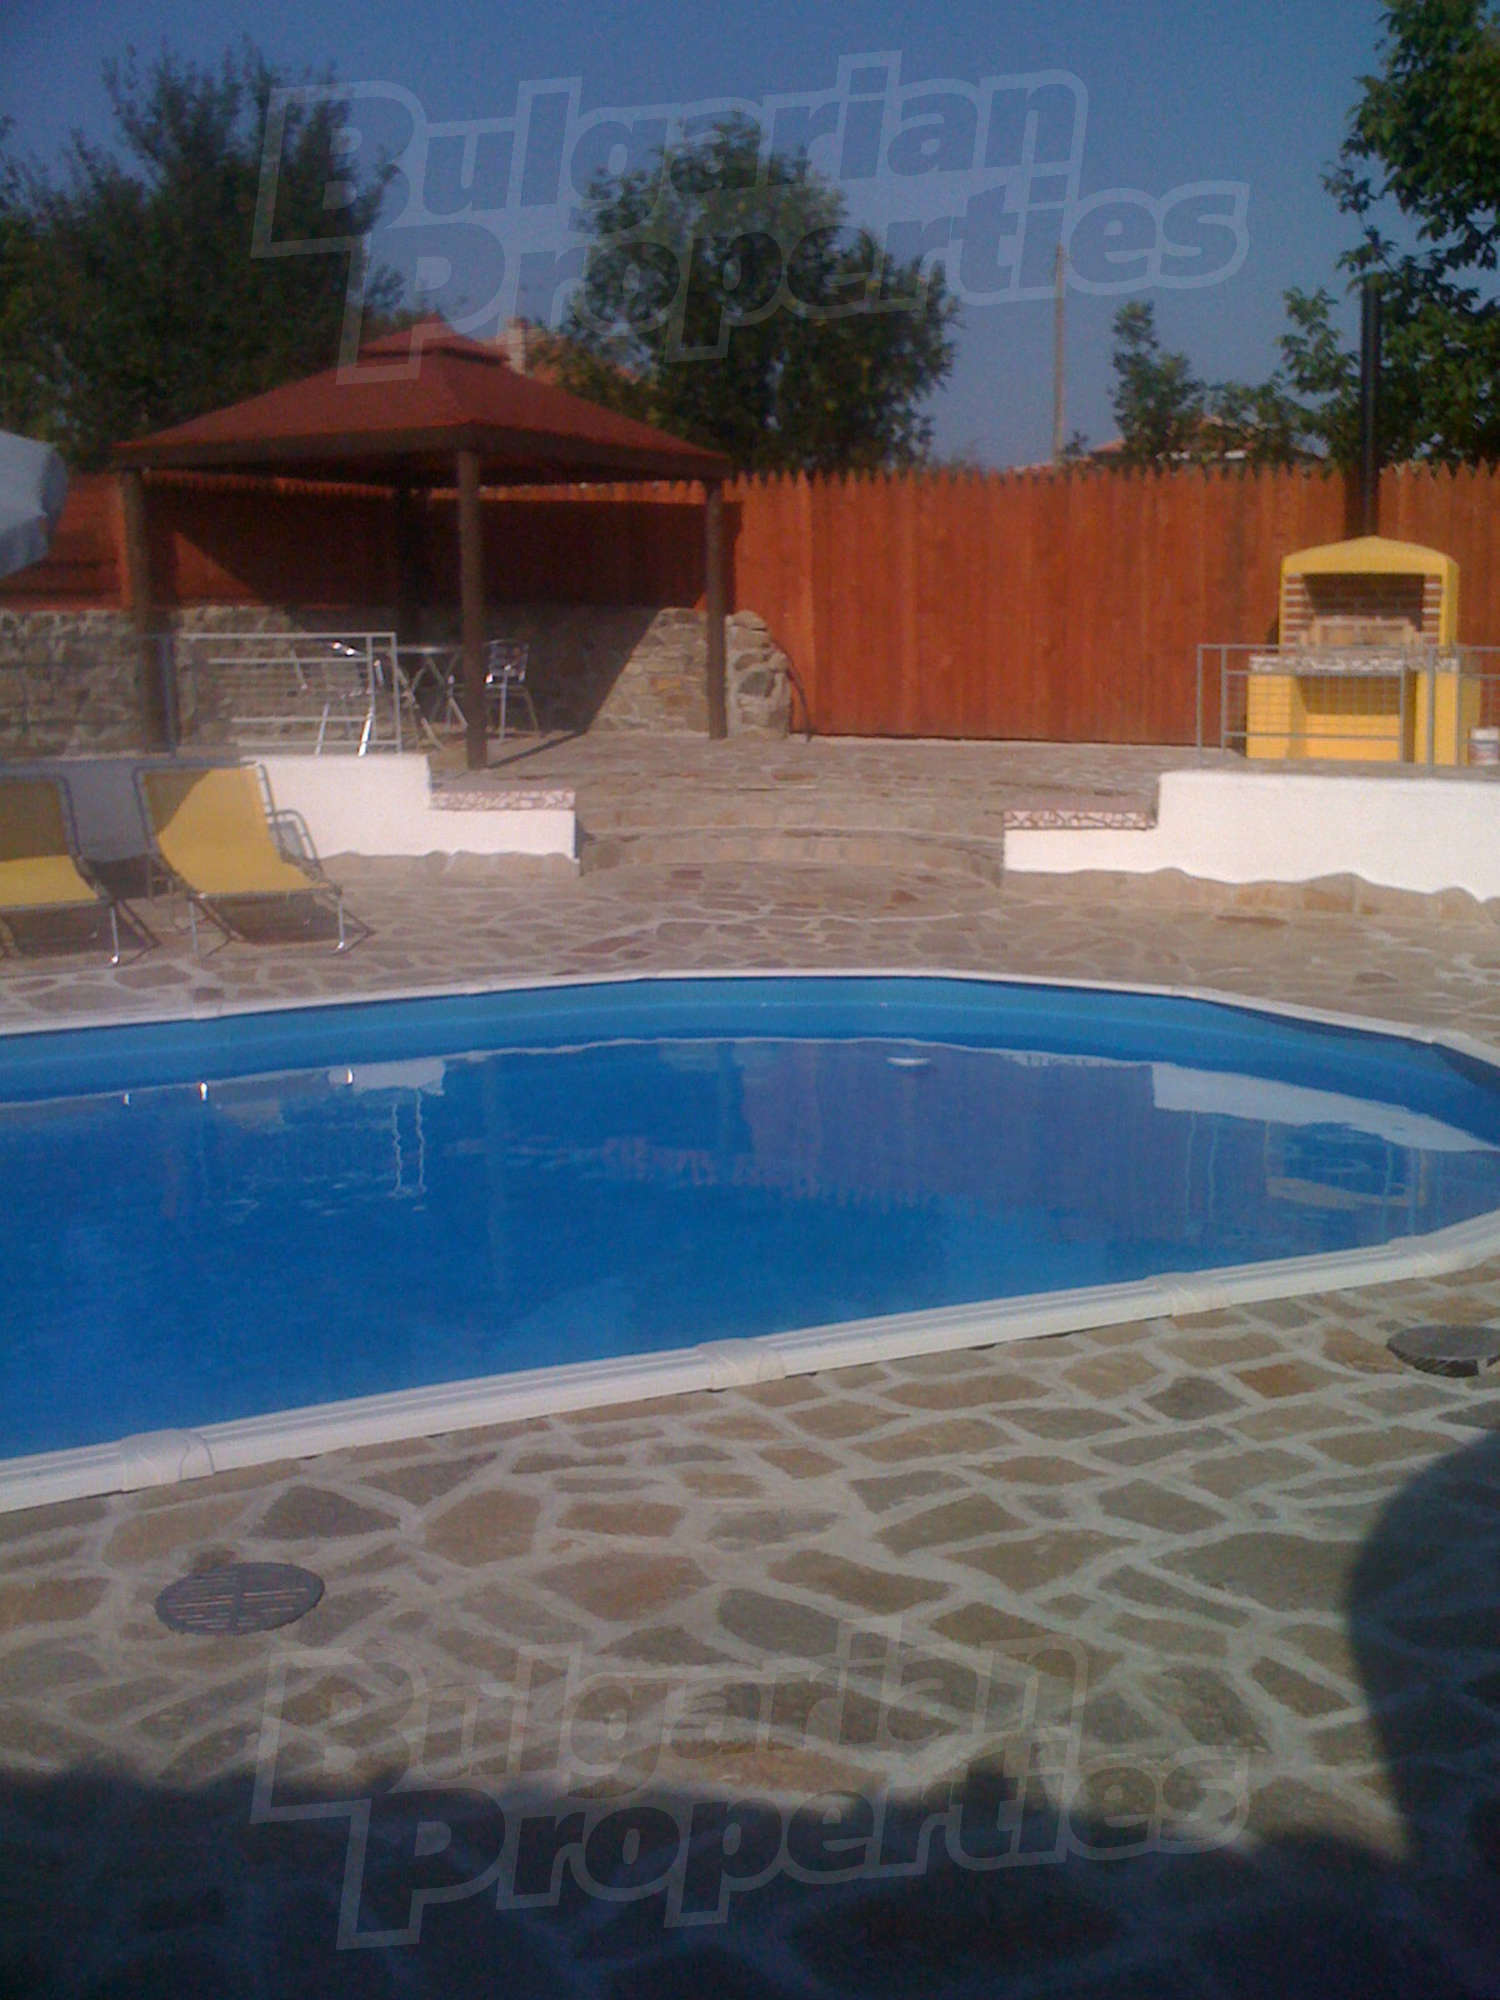 House for sale near burgas bulgaria new house with for Big house for sale with swimming pool